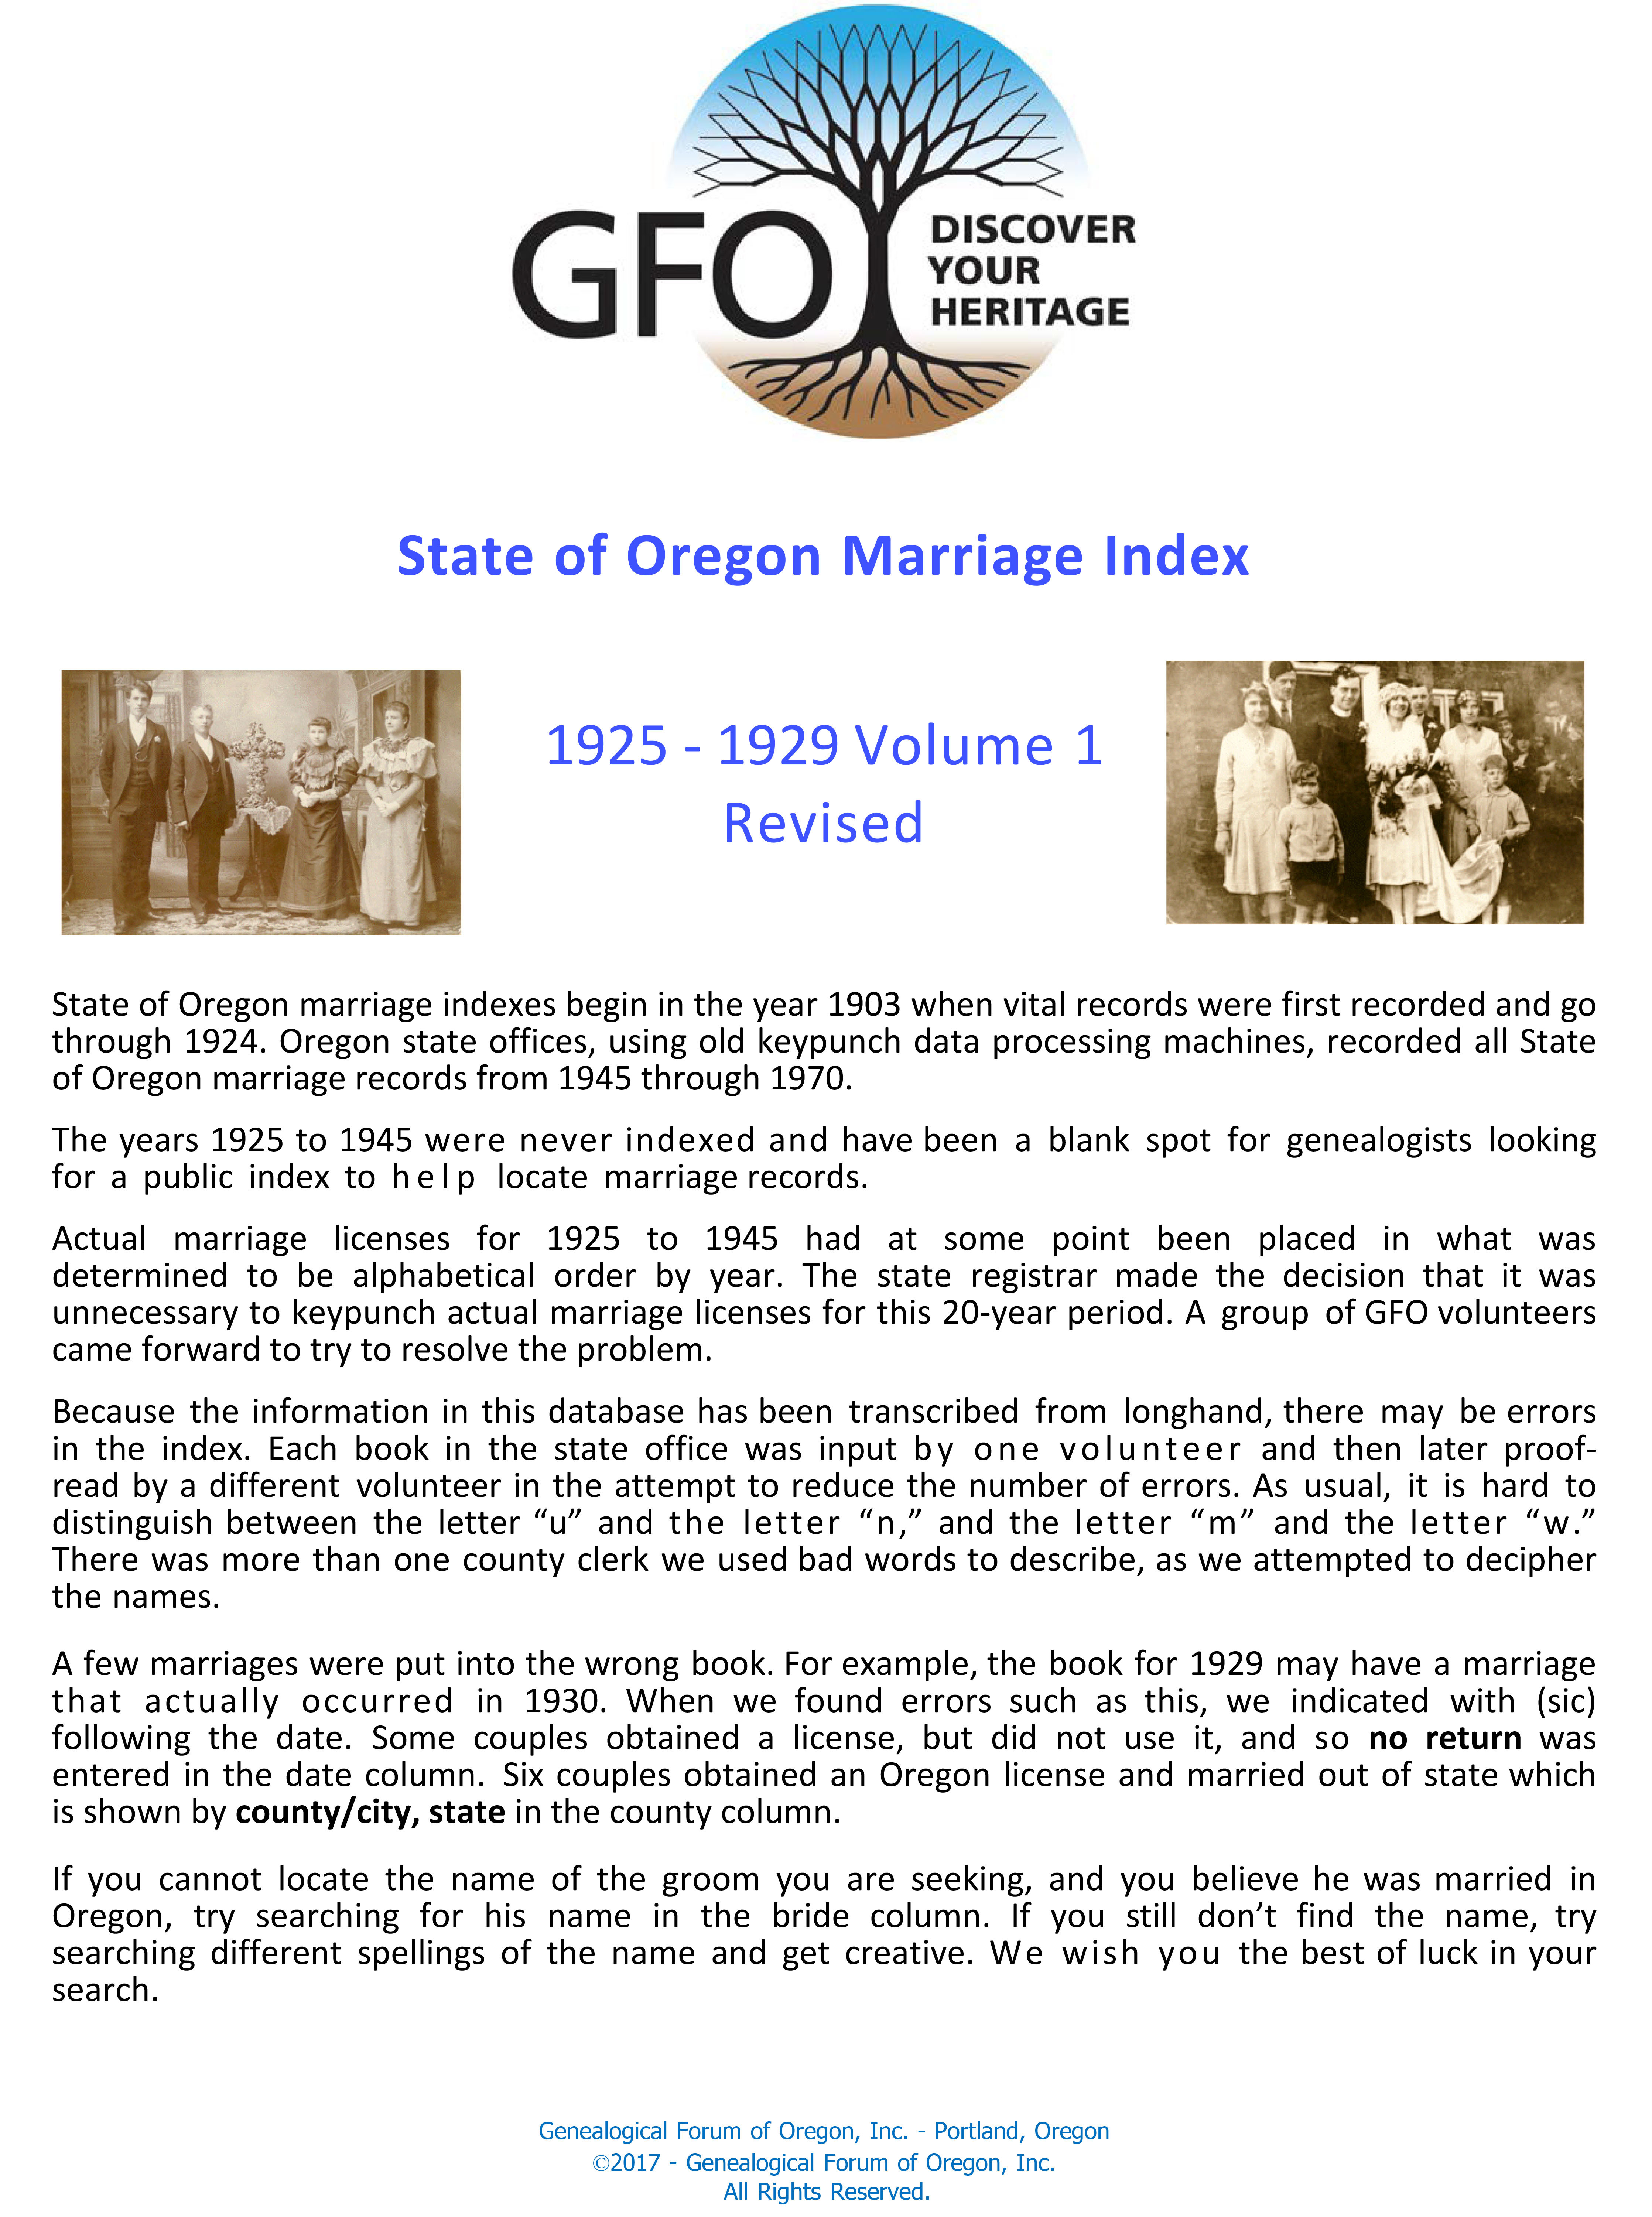 State of Oregon Marriage Index, 1935-1939 (Vol 3 of 4)